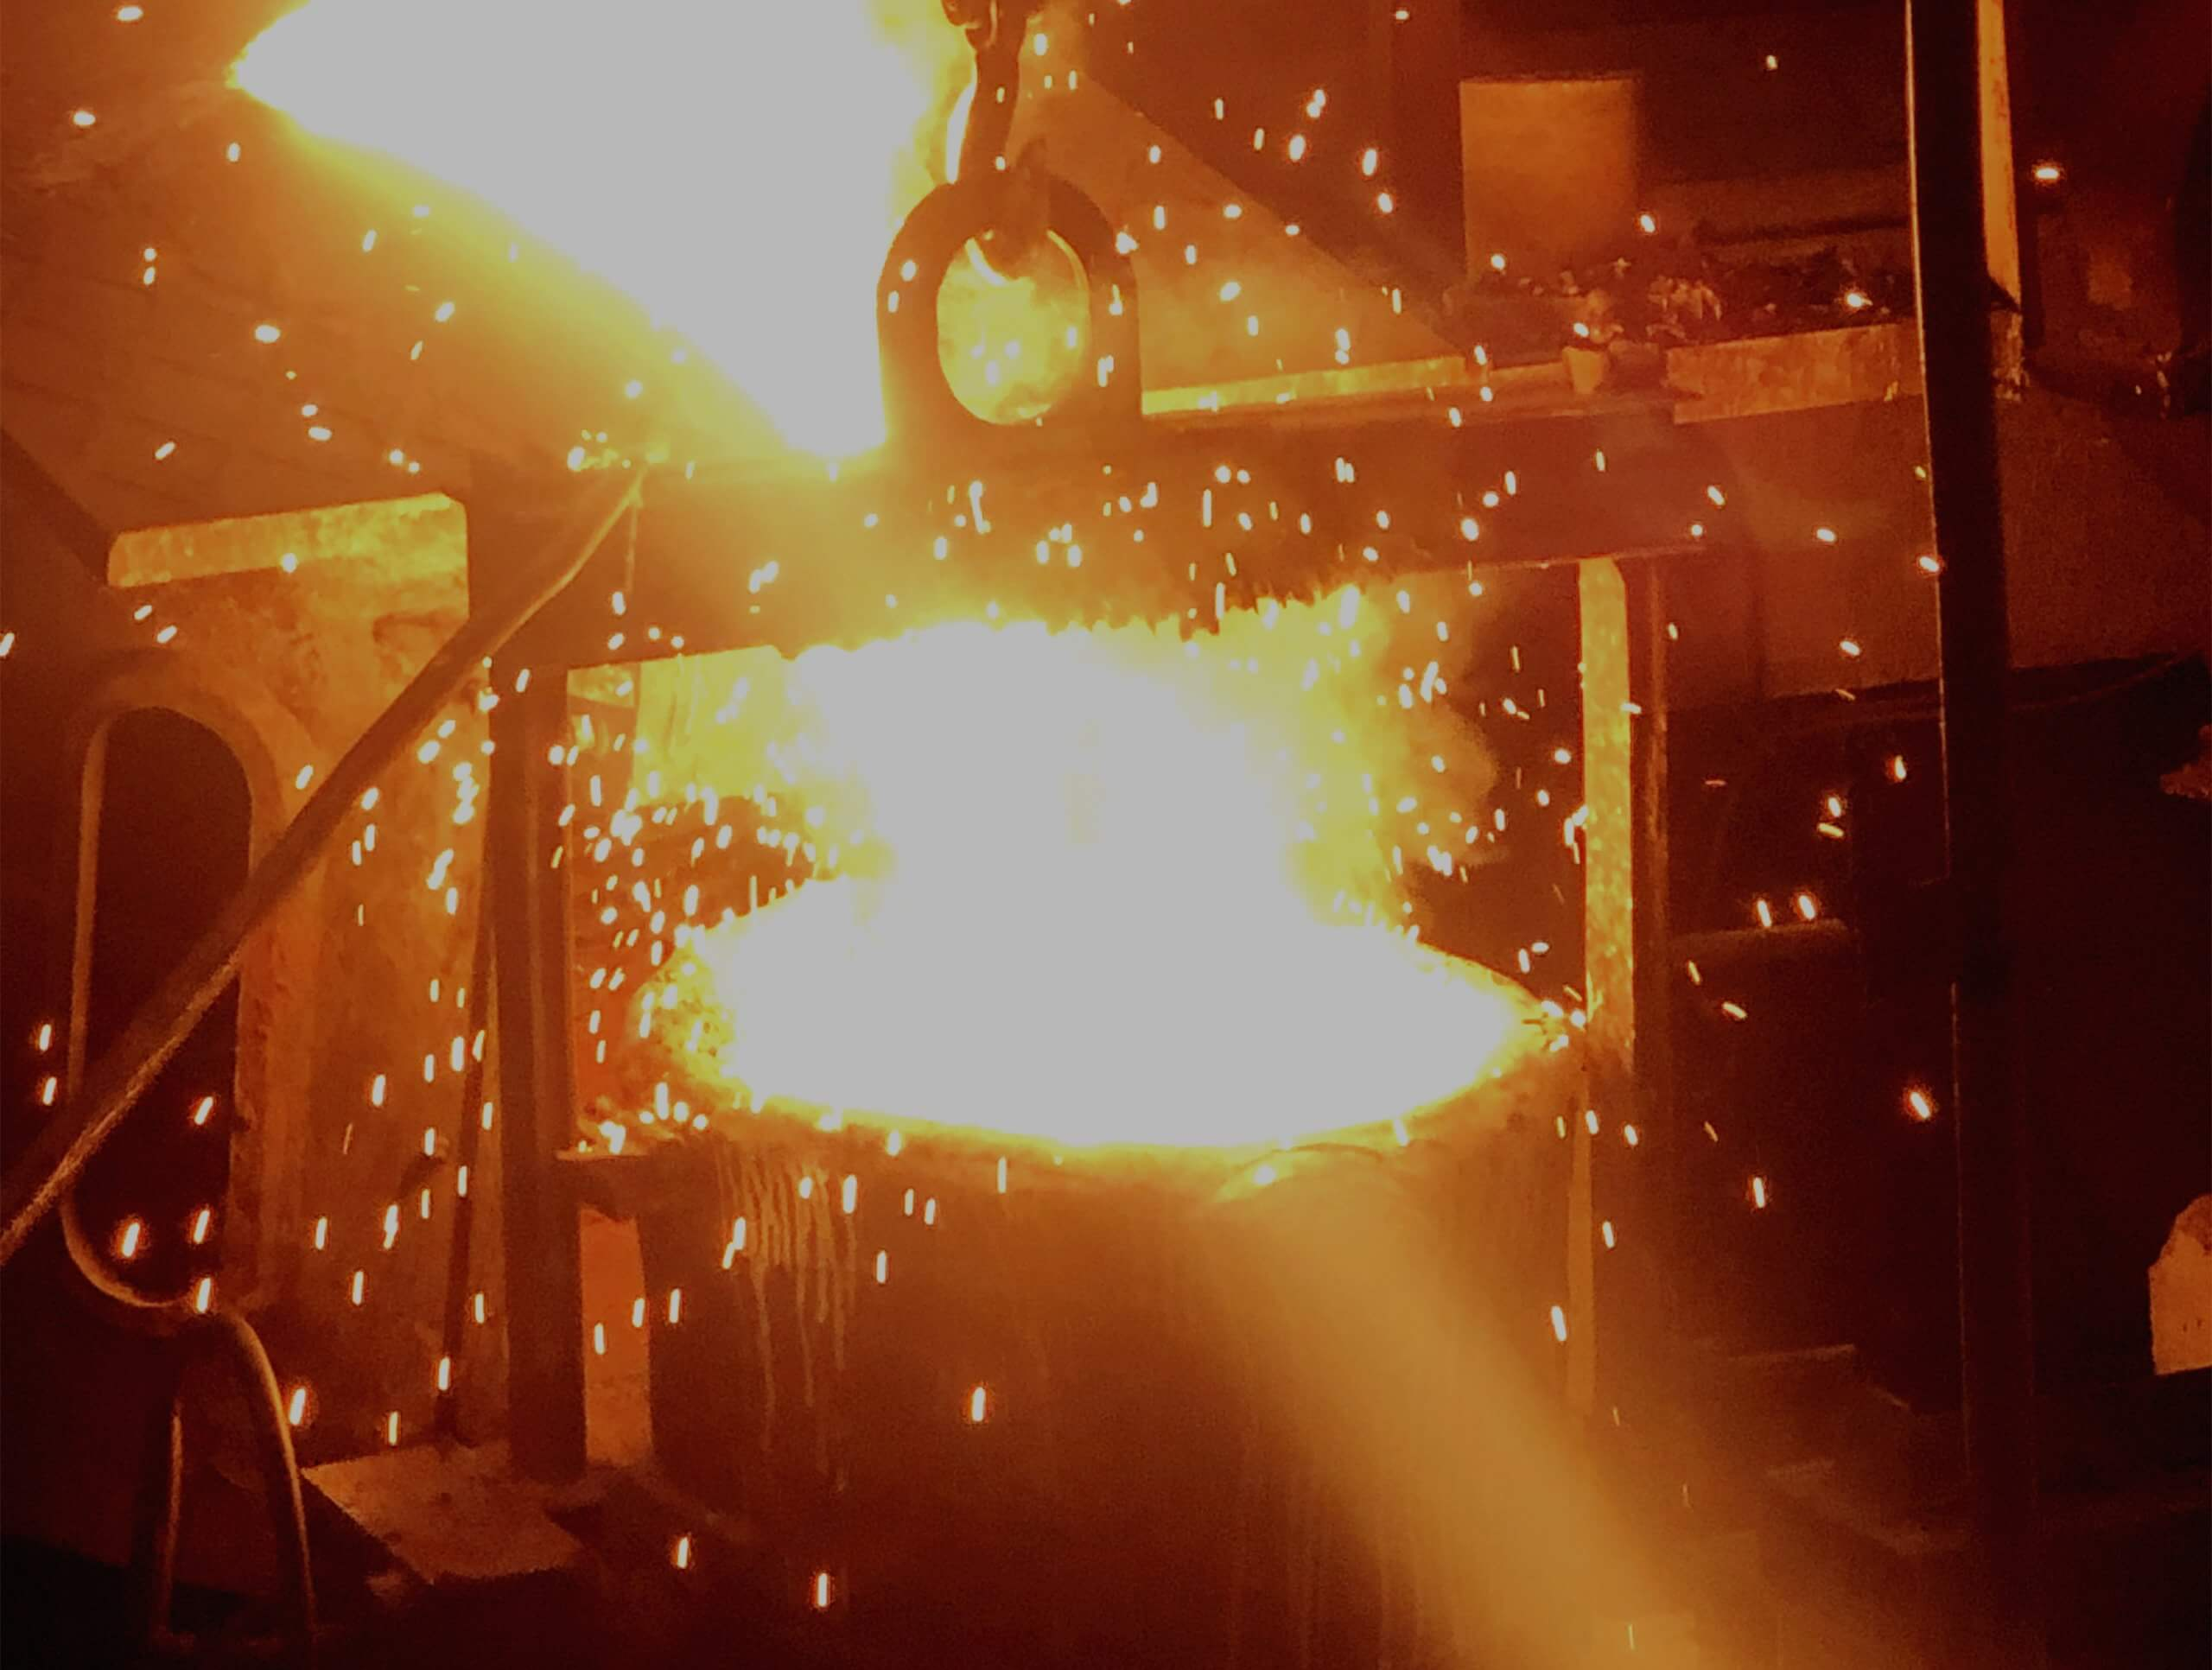 stainless steel process - melting